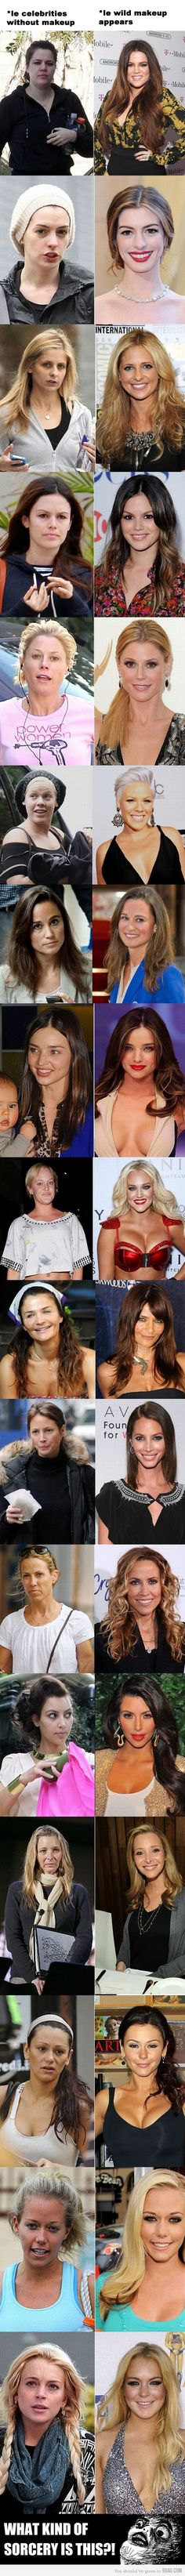 NEVER compare yourself to celebs. Without all the glitz and glam, they look just like the rest of us.